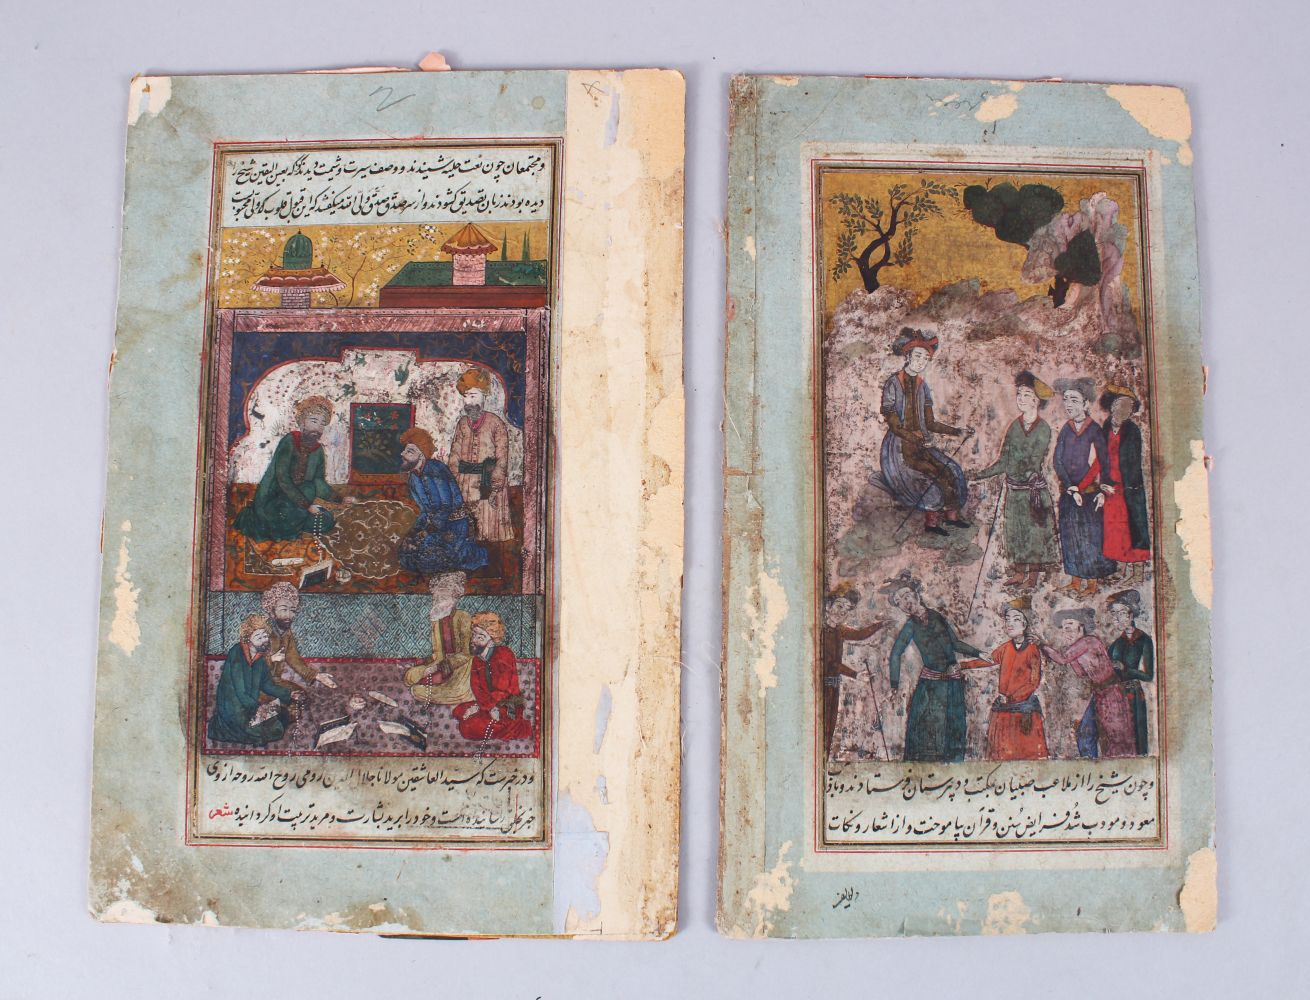 Lot 221 - TWO GOOD PERSIAN MINIATURE PAINTINGS ON BOARD POSSIBLY 17TH - 18TH CENTURY, each painting